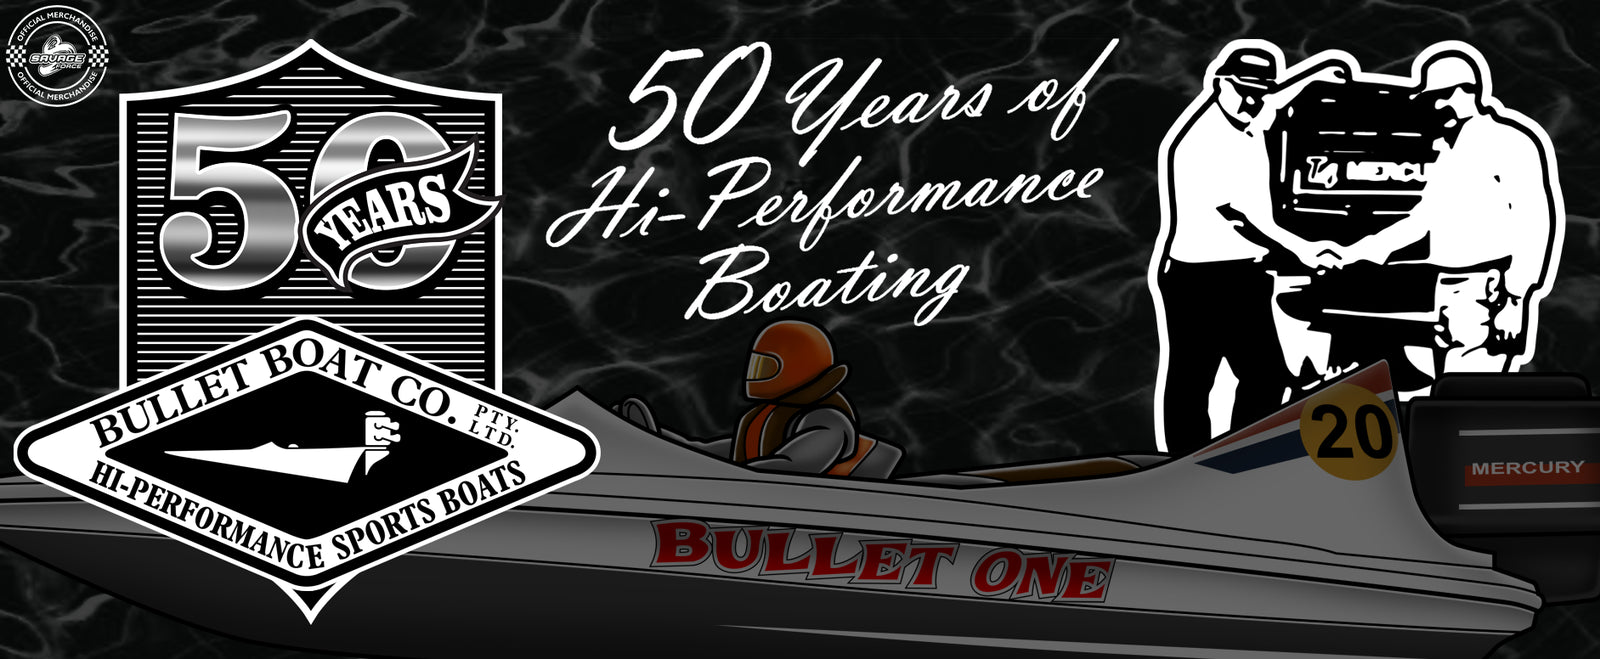 Bullet Boats 50th Anniversary Celebration Range by Savage Force